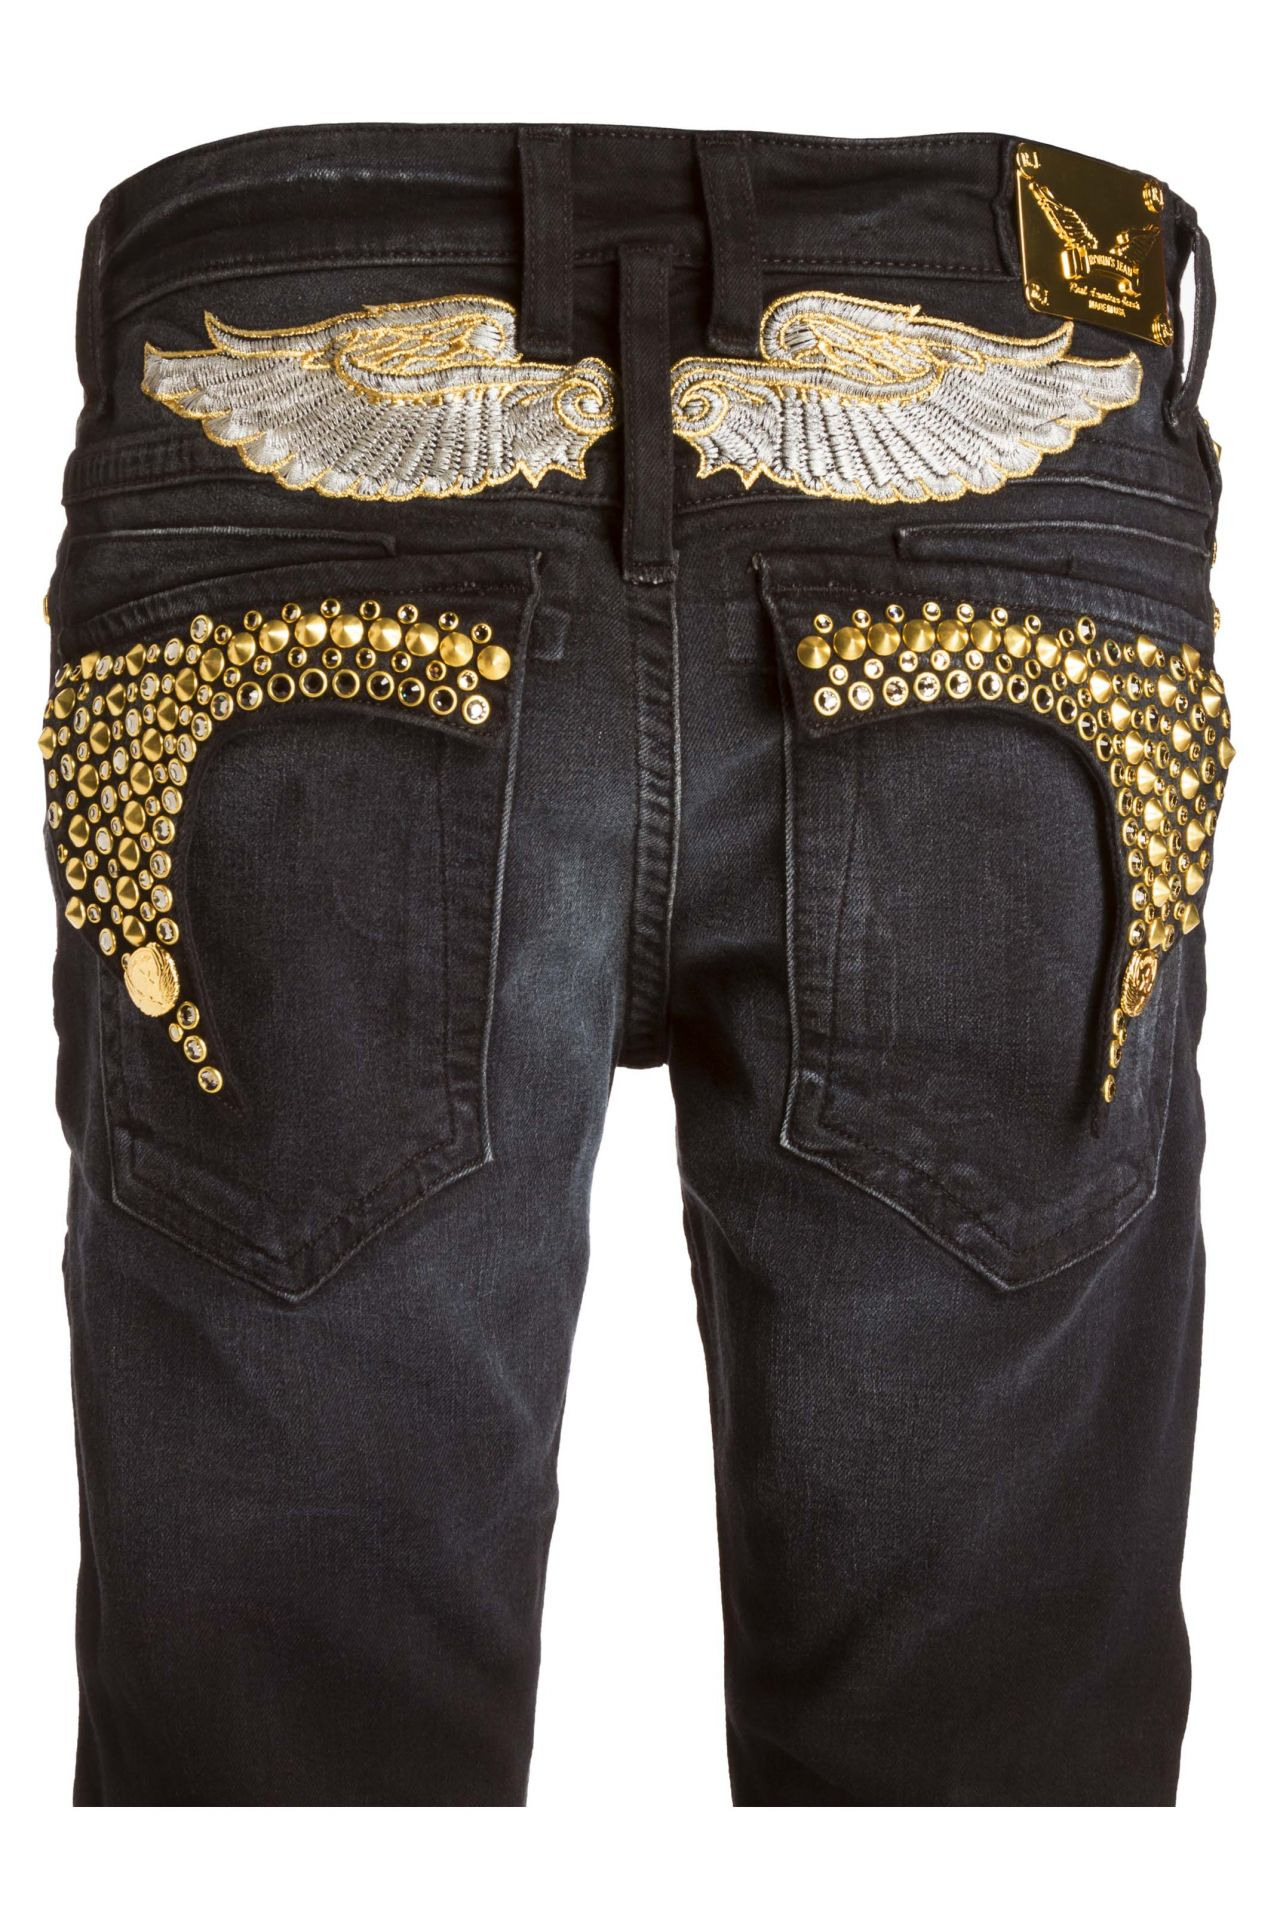 KILLER FLAP IN F_UP WITH CRYSTAL AND SPIKE STUDDING